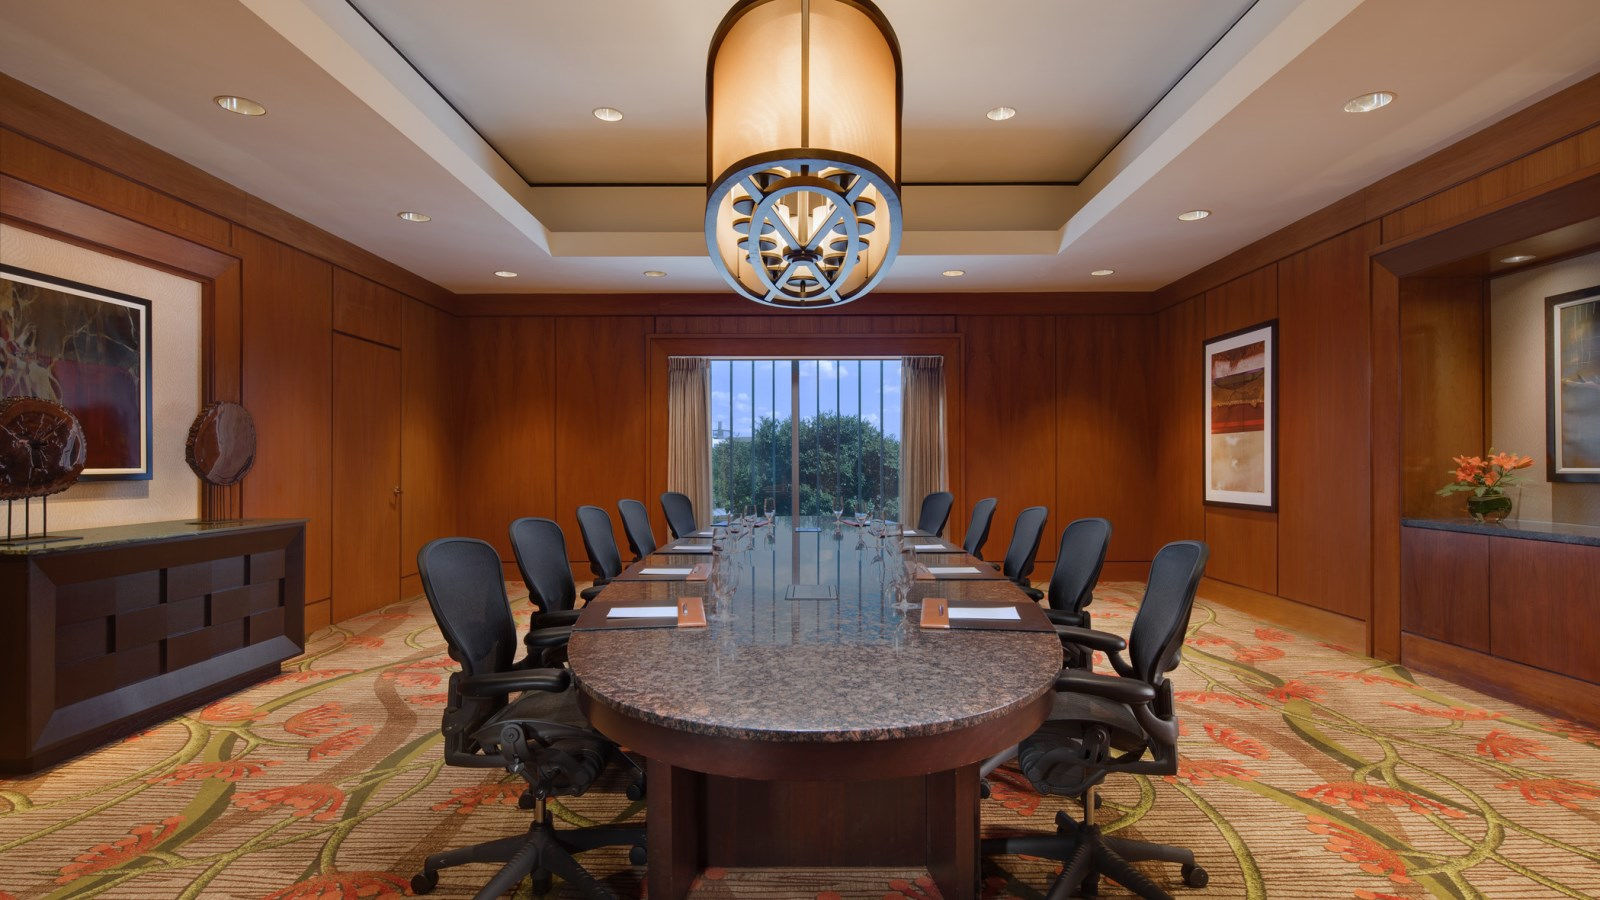 Sheraton Dallas Hotel - Dallas Conference Rooms